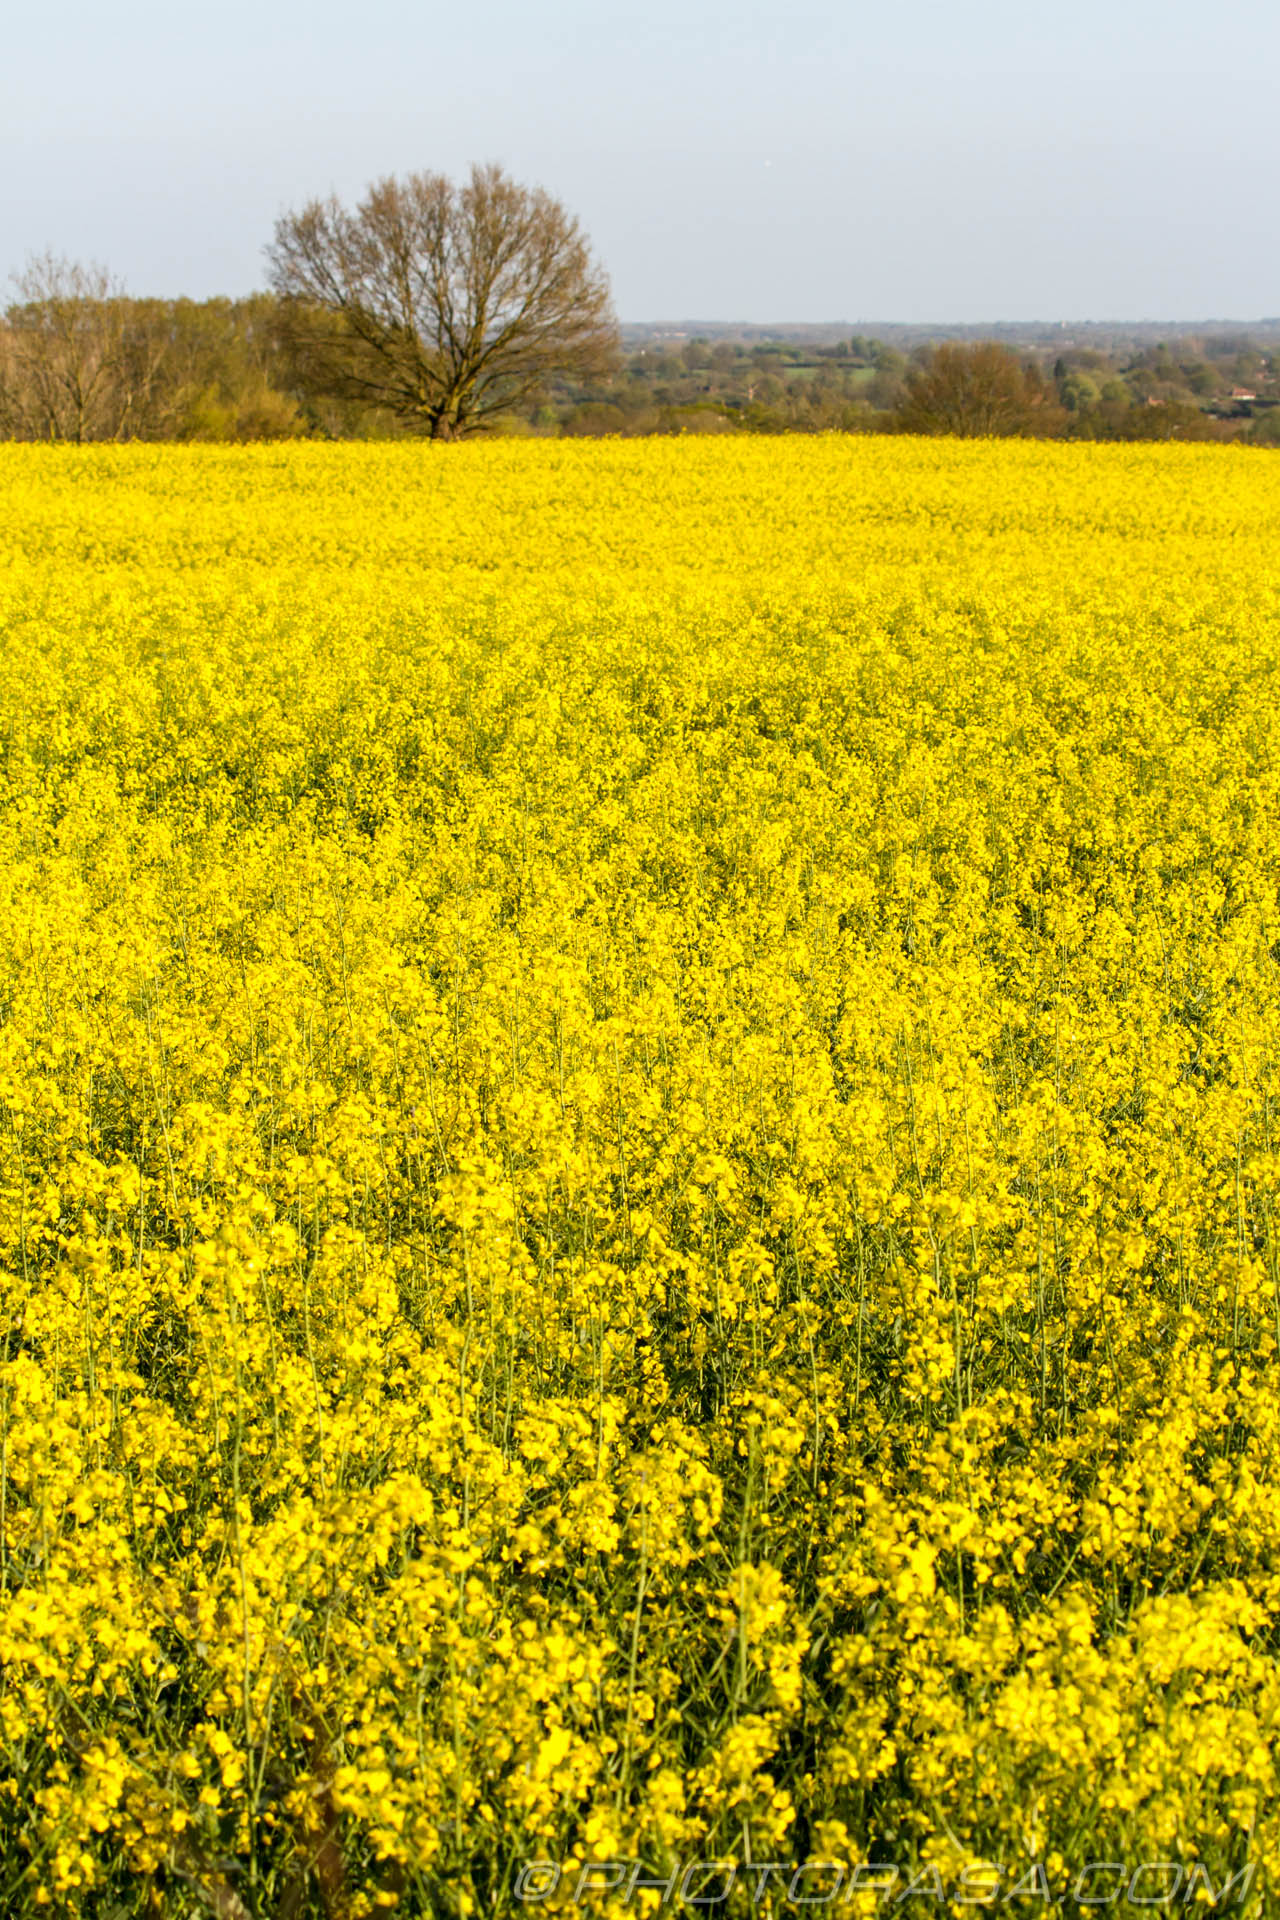 http://photorasa.com/farming/kentish-yellow-rapeseed-flowers/